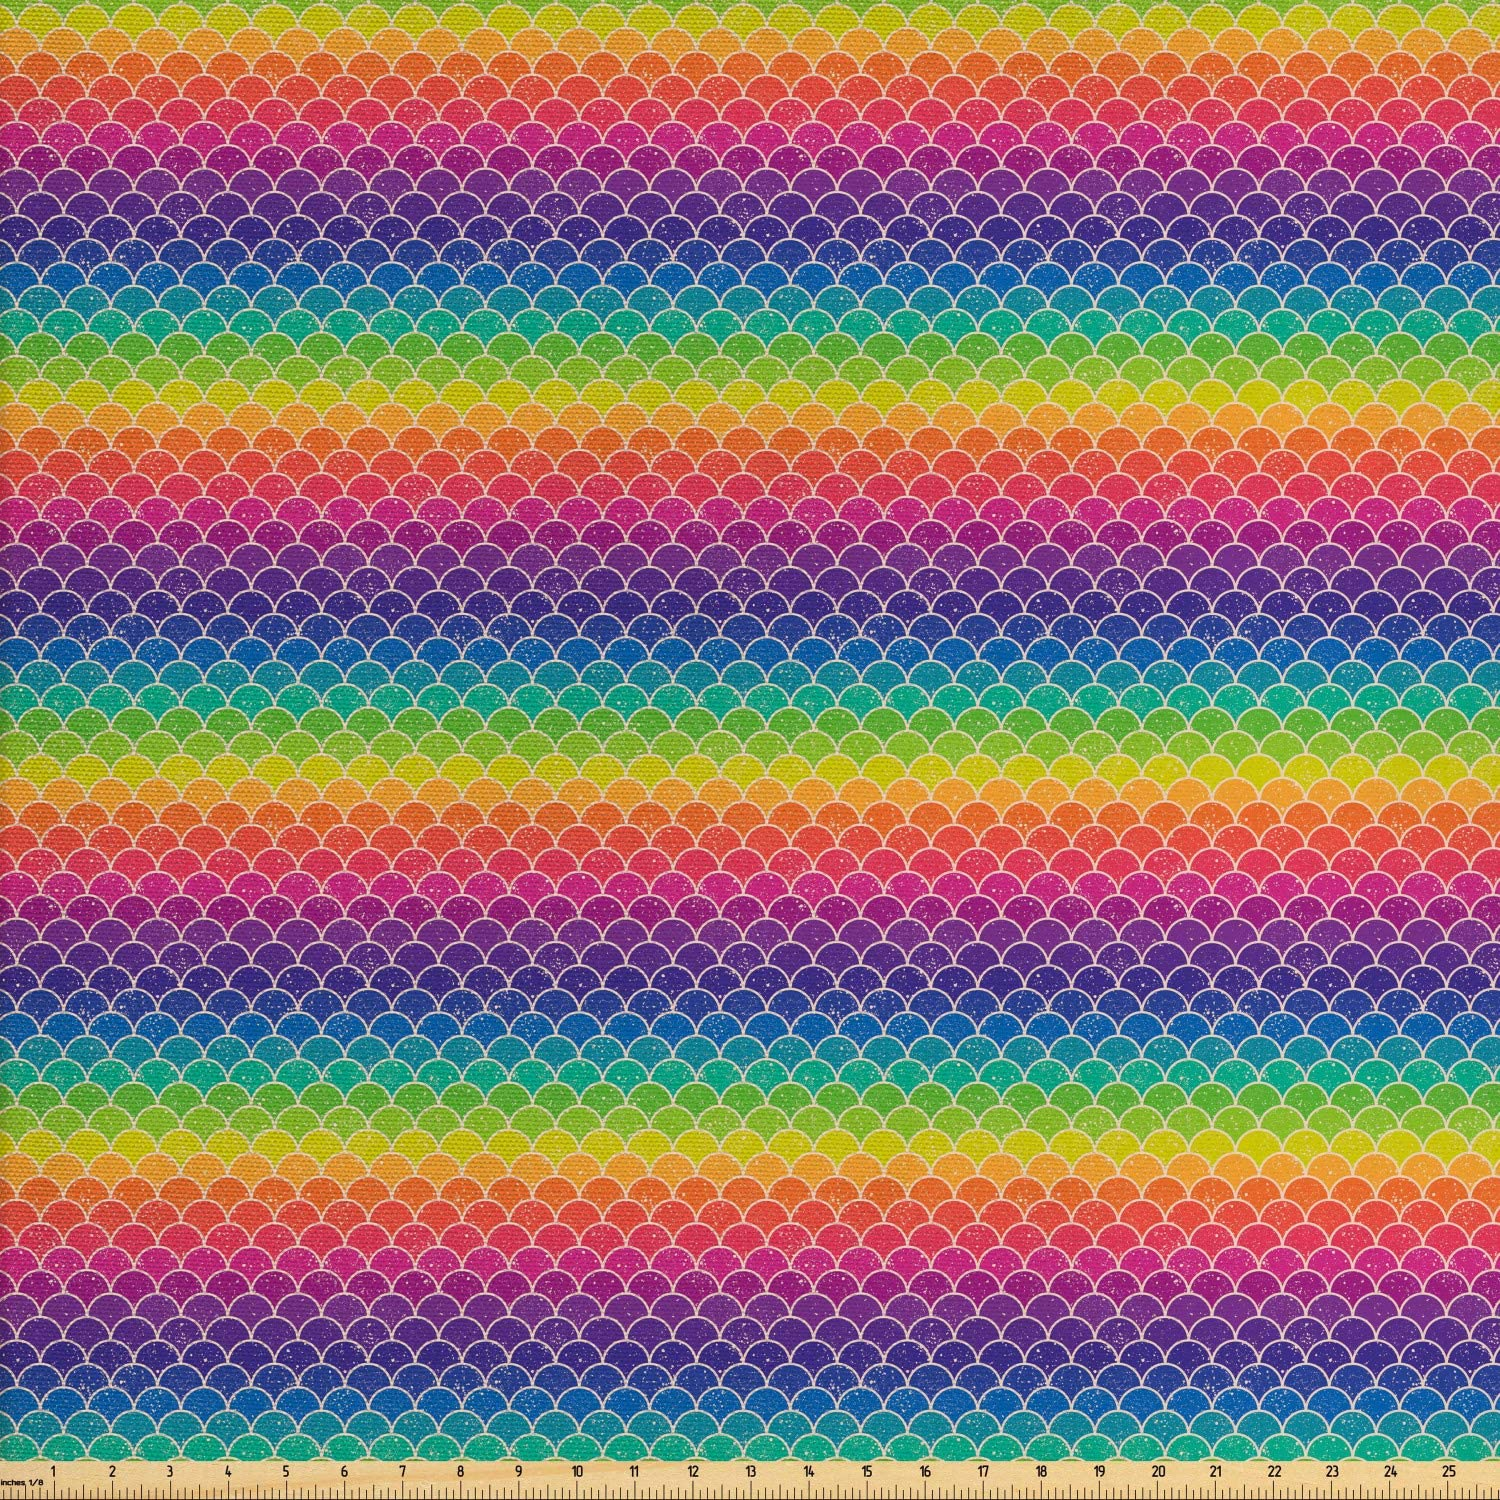 Lunarable Rainbow Fabric by The Yard, Rainbow Colored Chevron Pattern with Wihte Spots Abstract Psychedelic Art Print, Decorative Fabric for Upholstery and Home Accents, 2 Yards, Multicolor